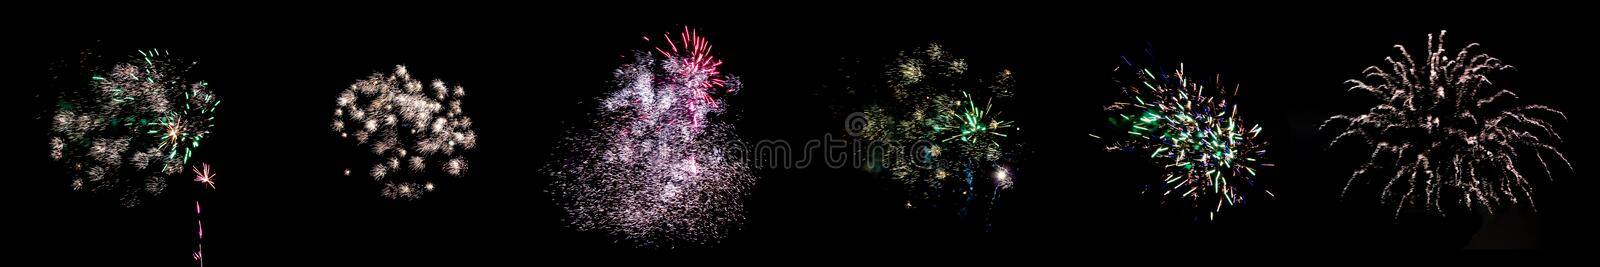 Set of multicolored flashes of fireworks isolated on black background stock photography